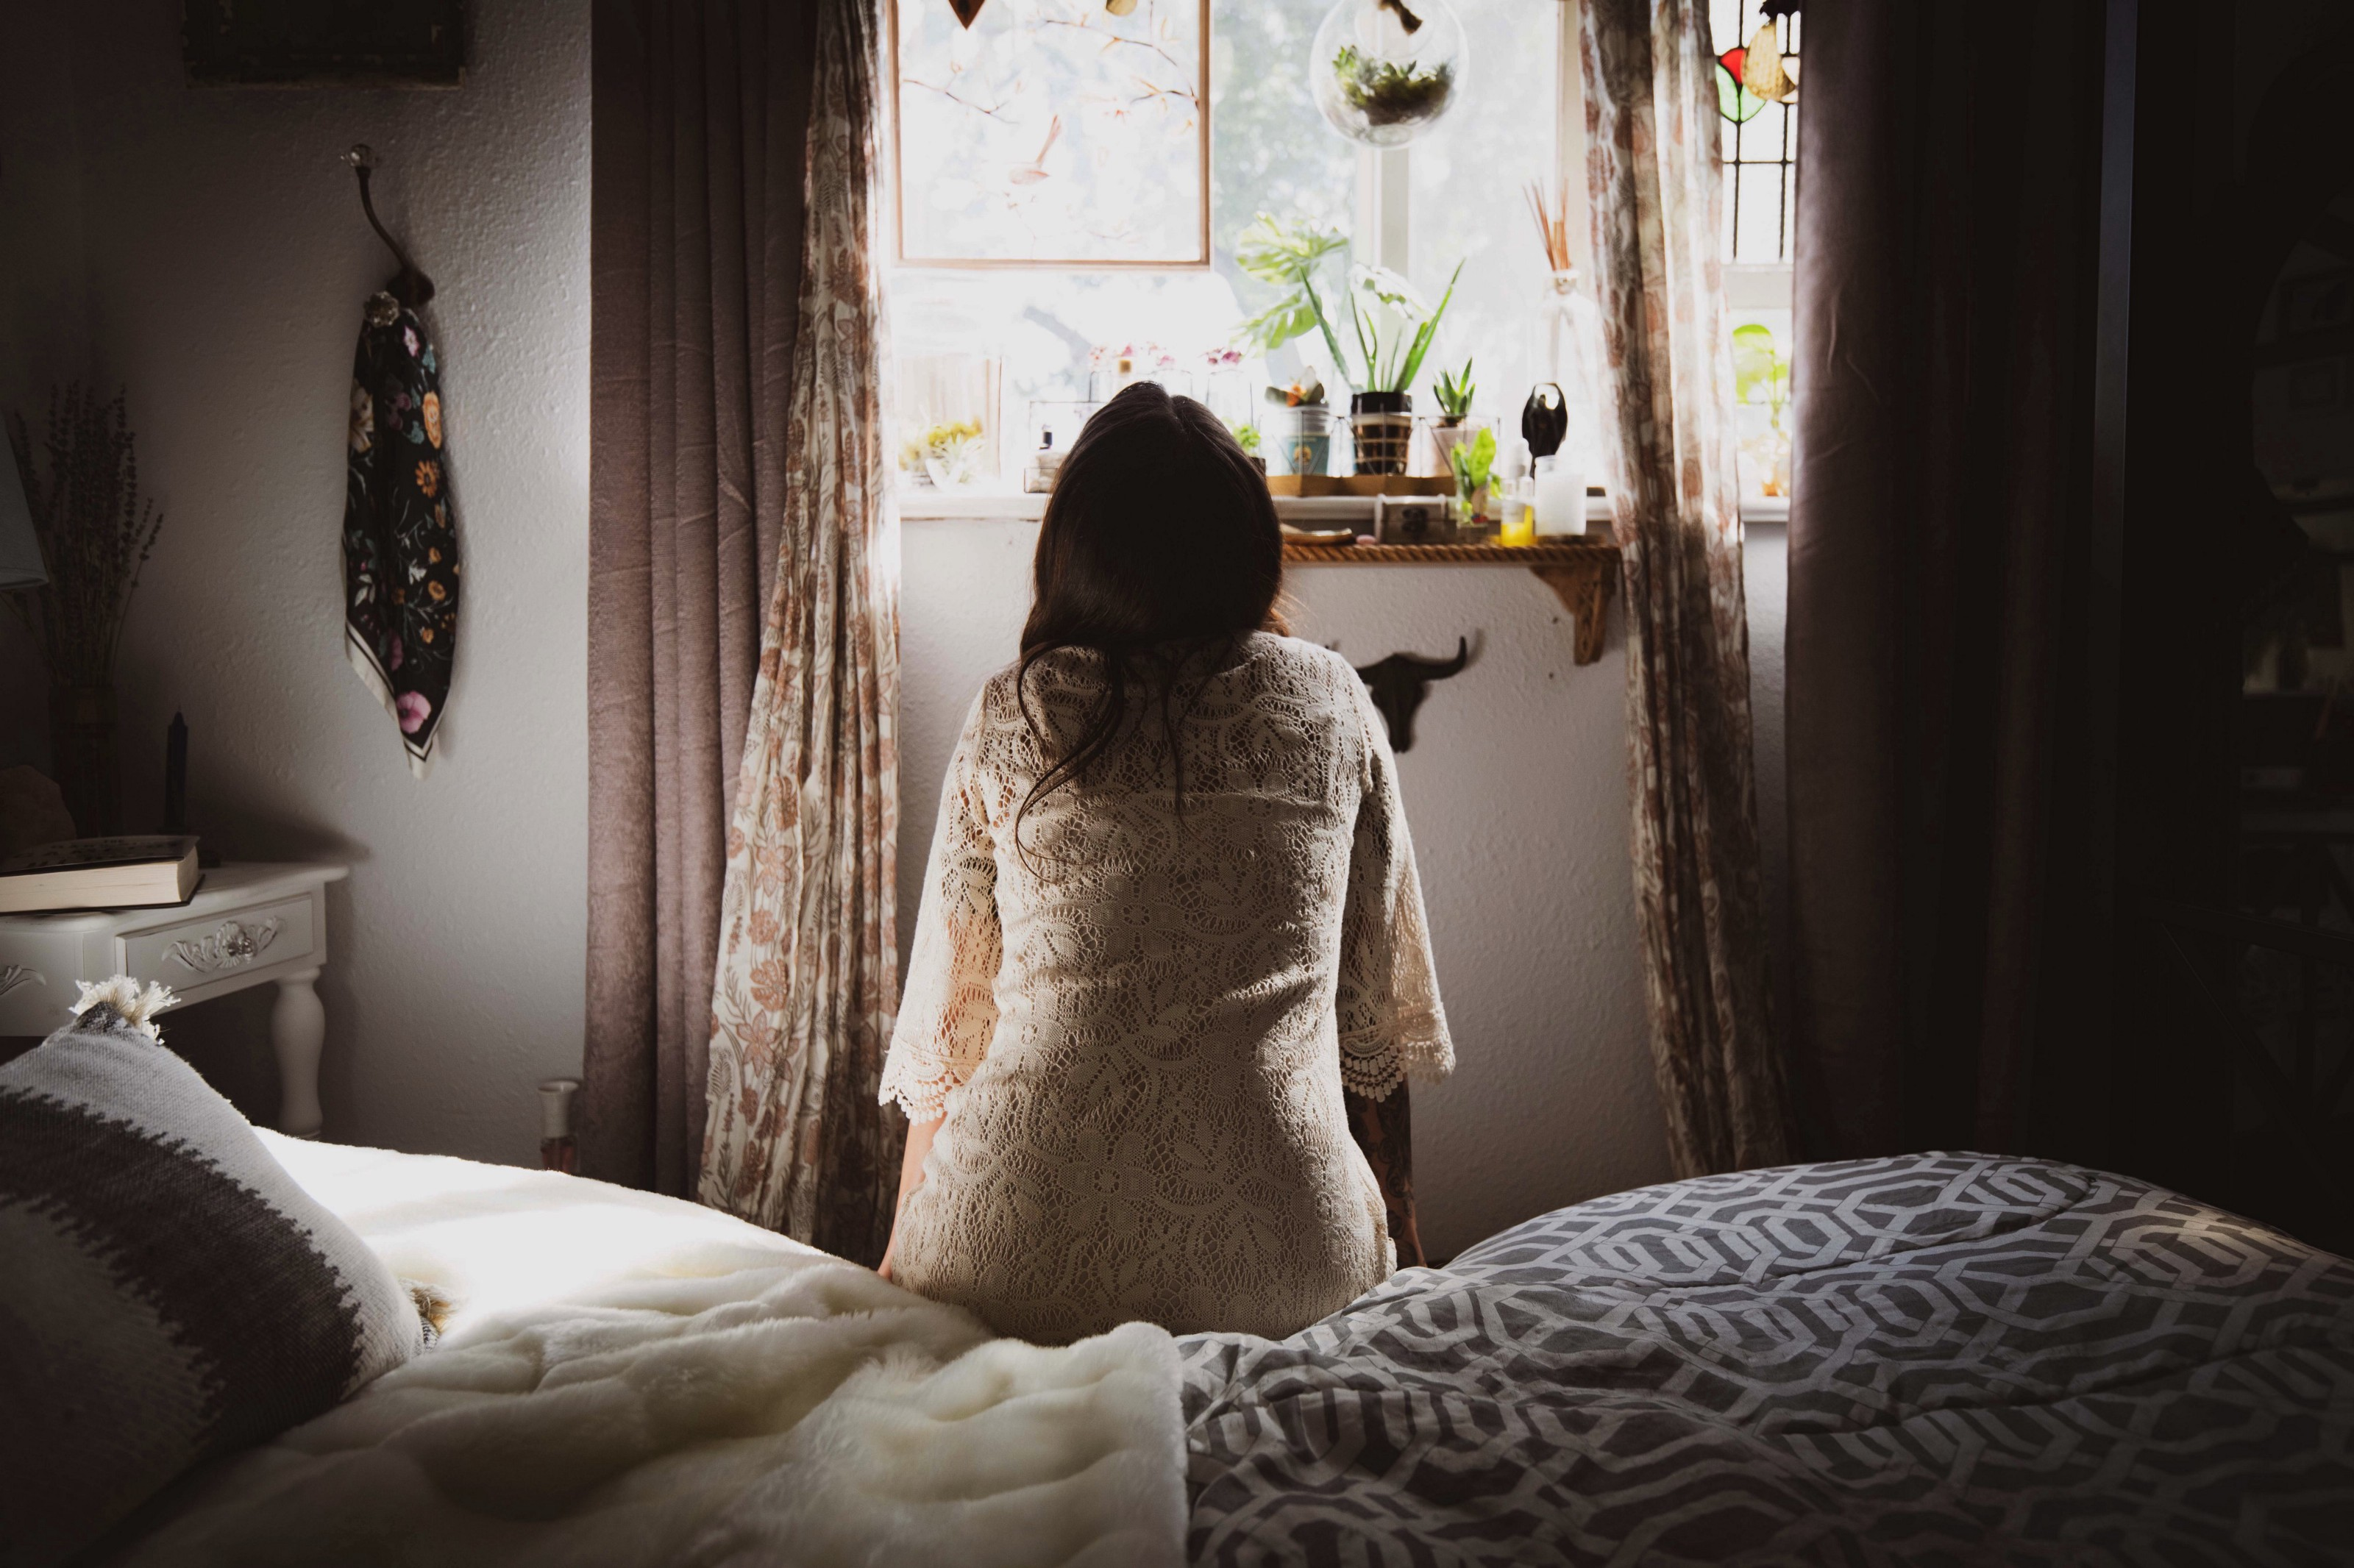 Woman sitting at edge of bed looking towards window trying to decide how to move forward. Her back profile is seen